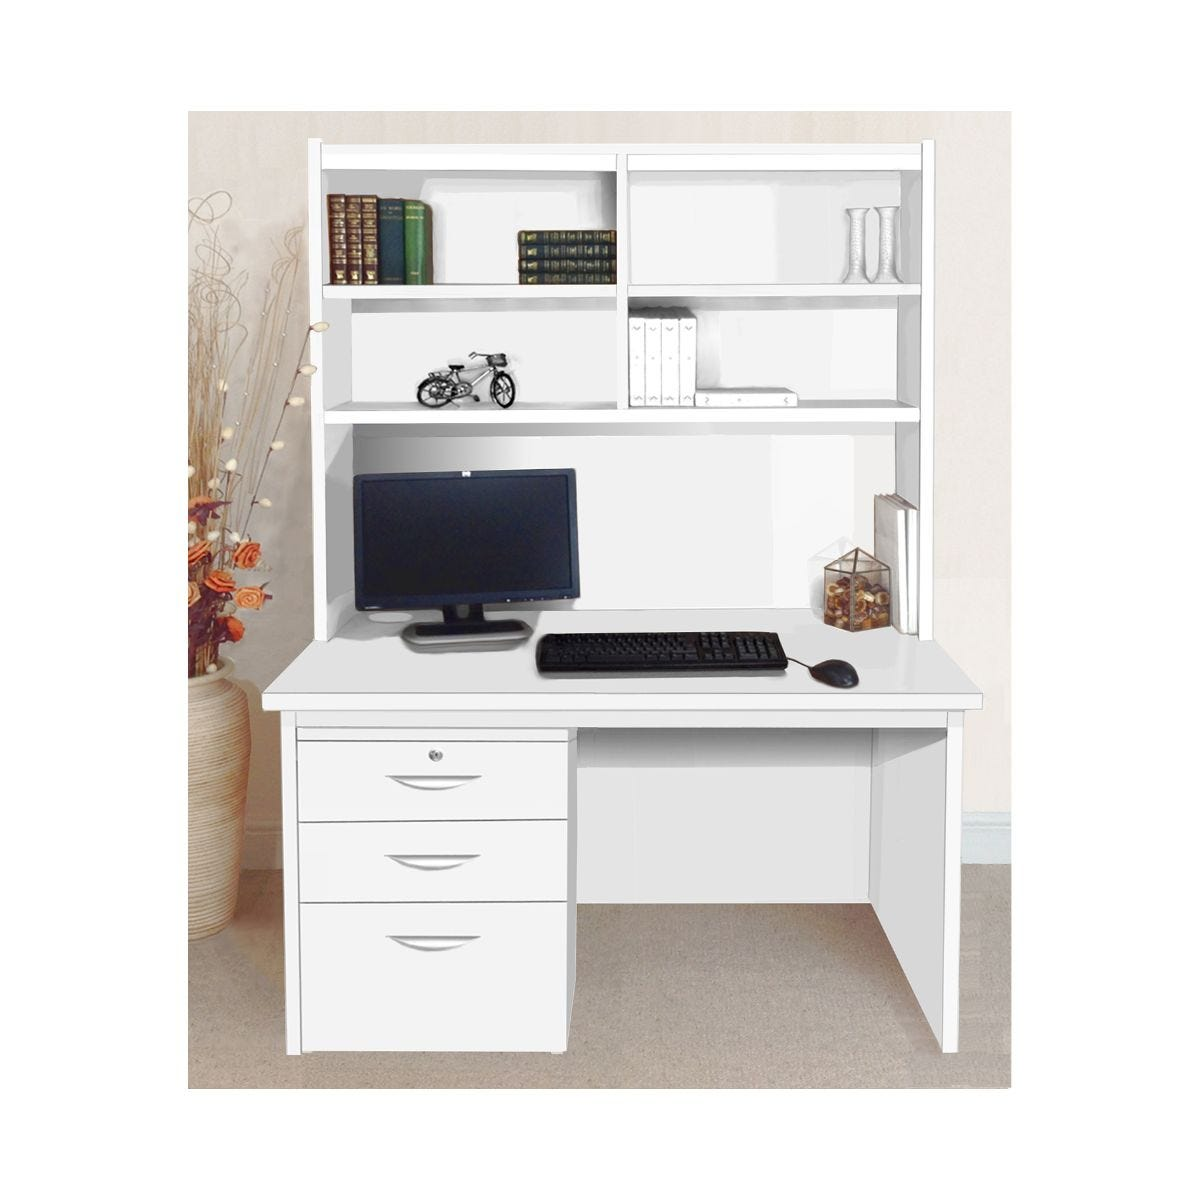 R White Home Office Freestanding Desk with Drawers and Overshelving, White